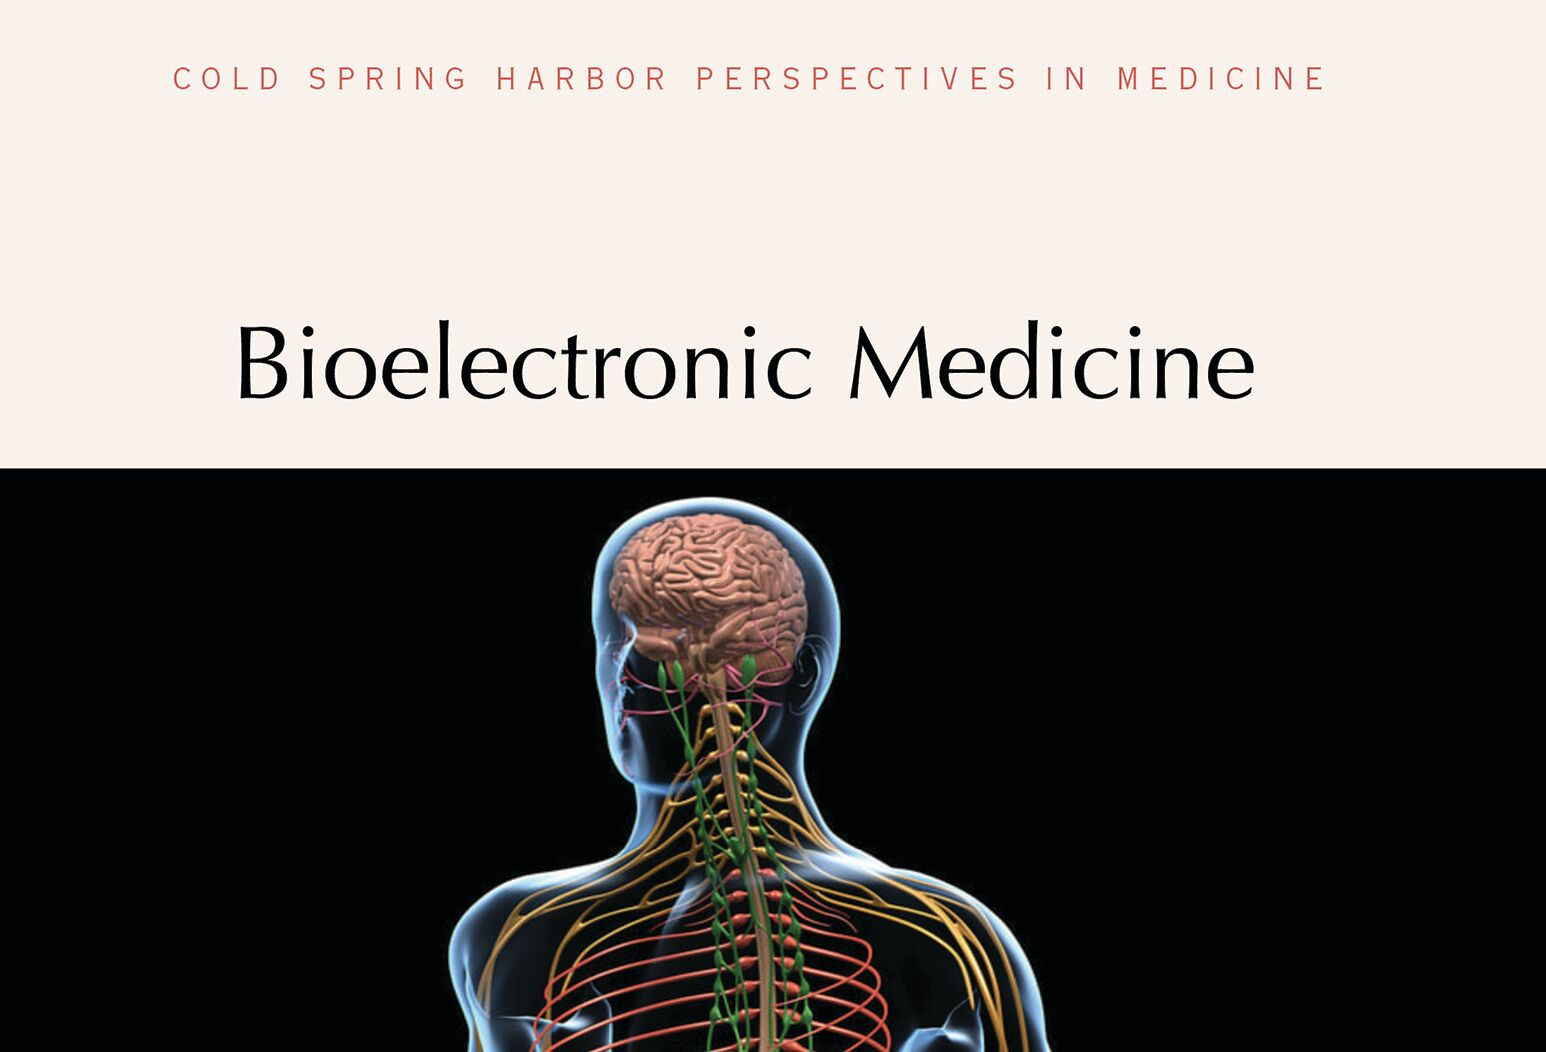 The cover of Kevin Tracey's new book on bioelectronic medicine